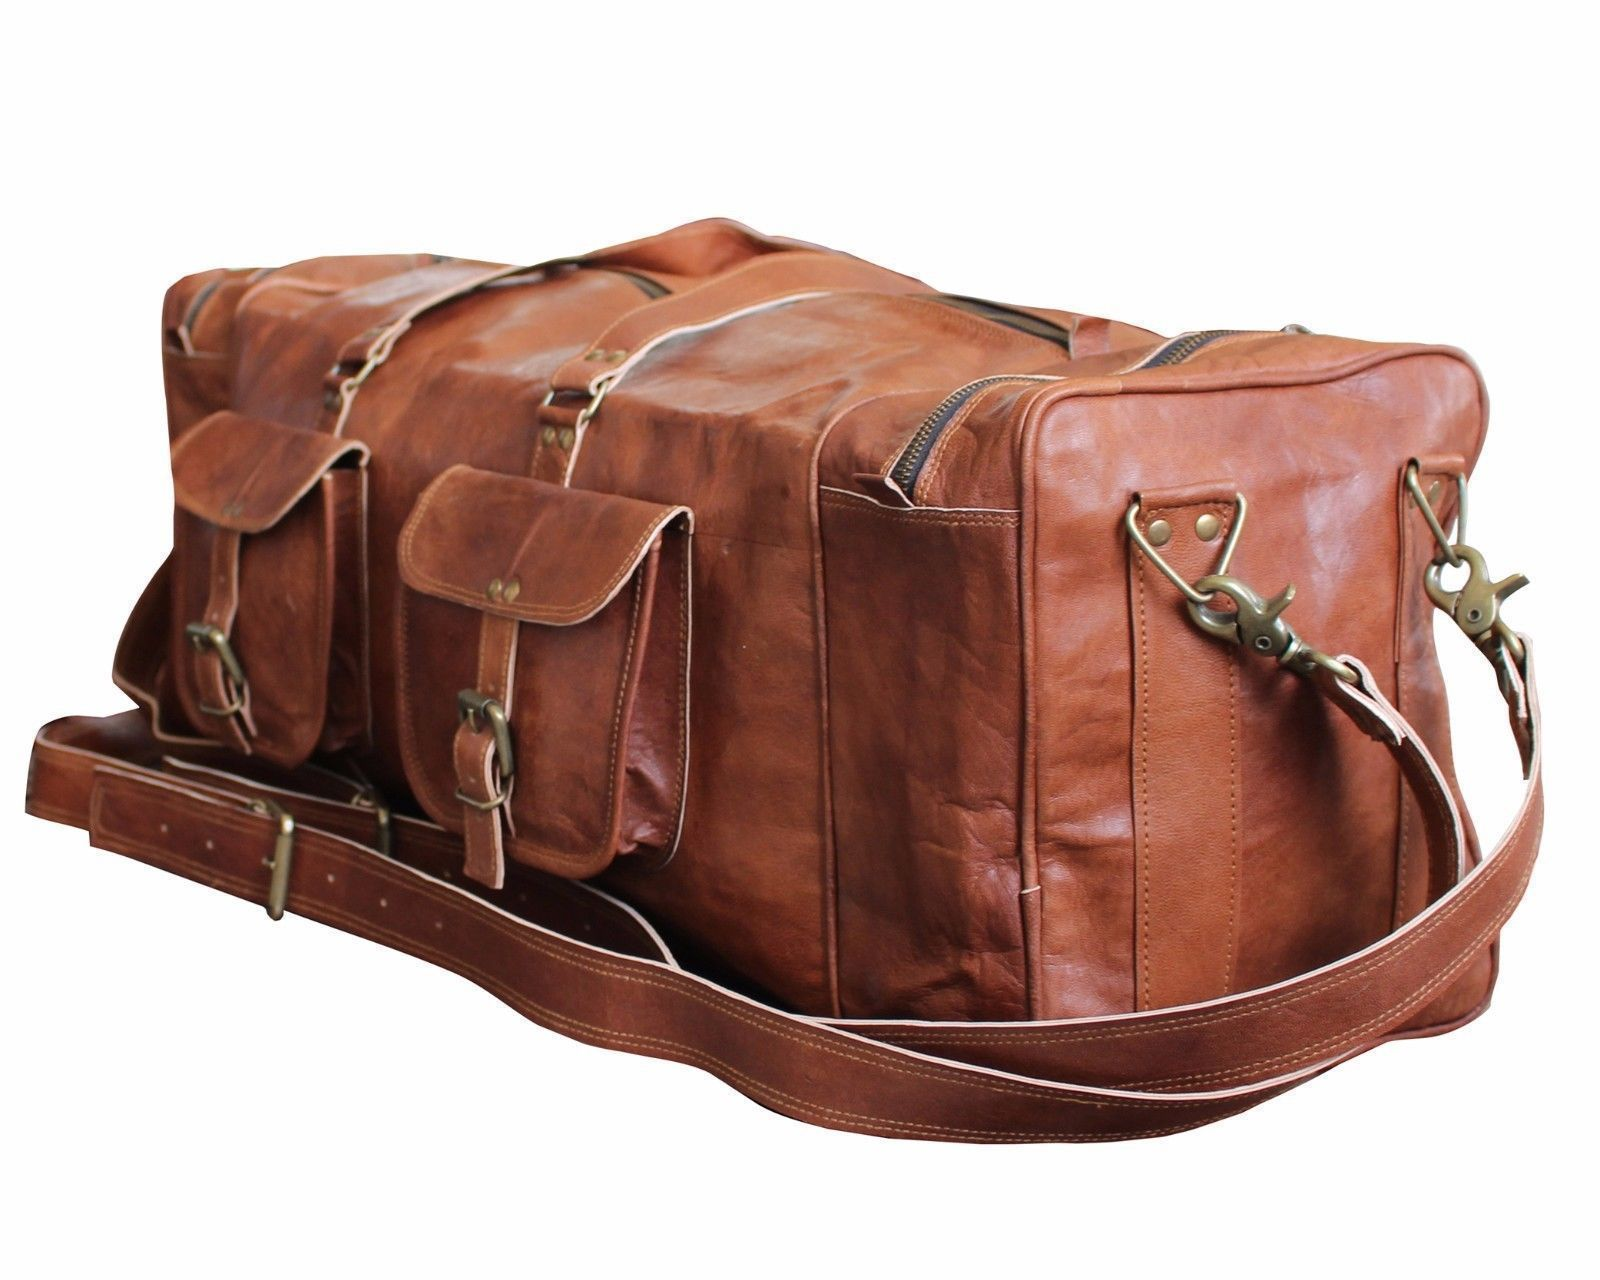 New Men Luggage Rustic Vintage Leather Travel Duffel Weekend Gym Overnight Bag